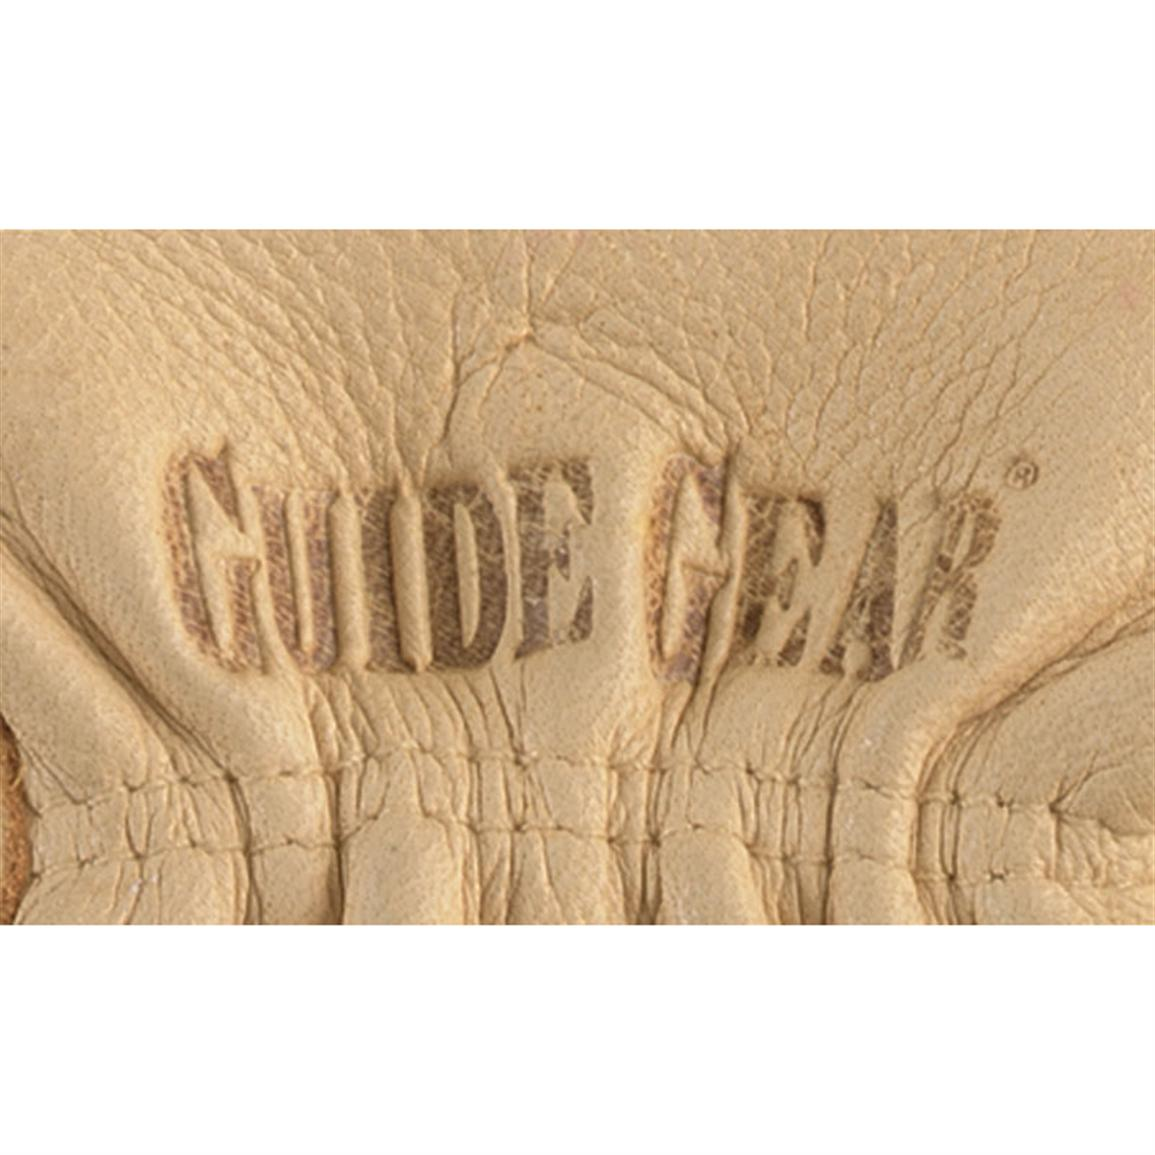 Embossed Guide Gear logo